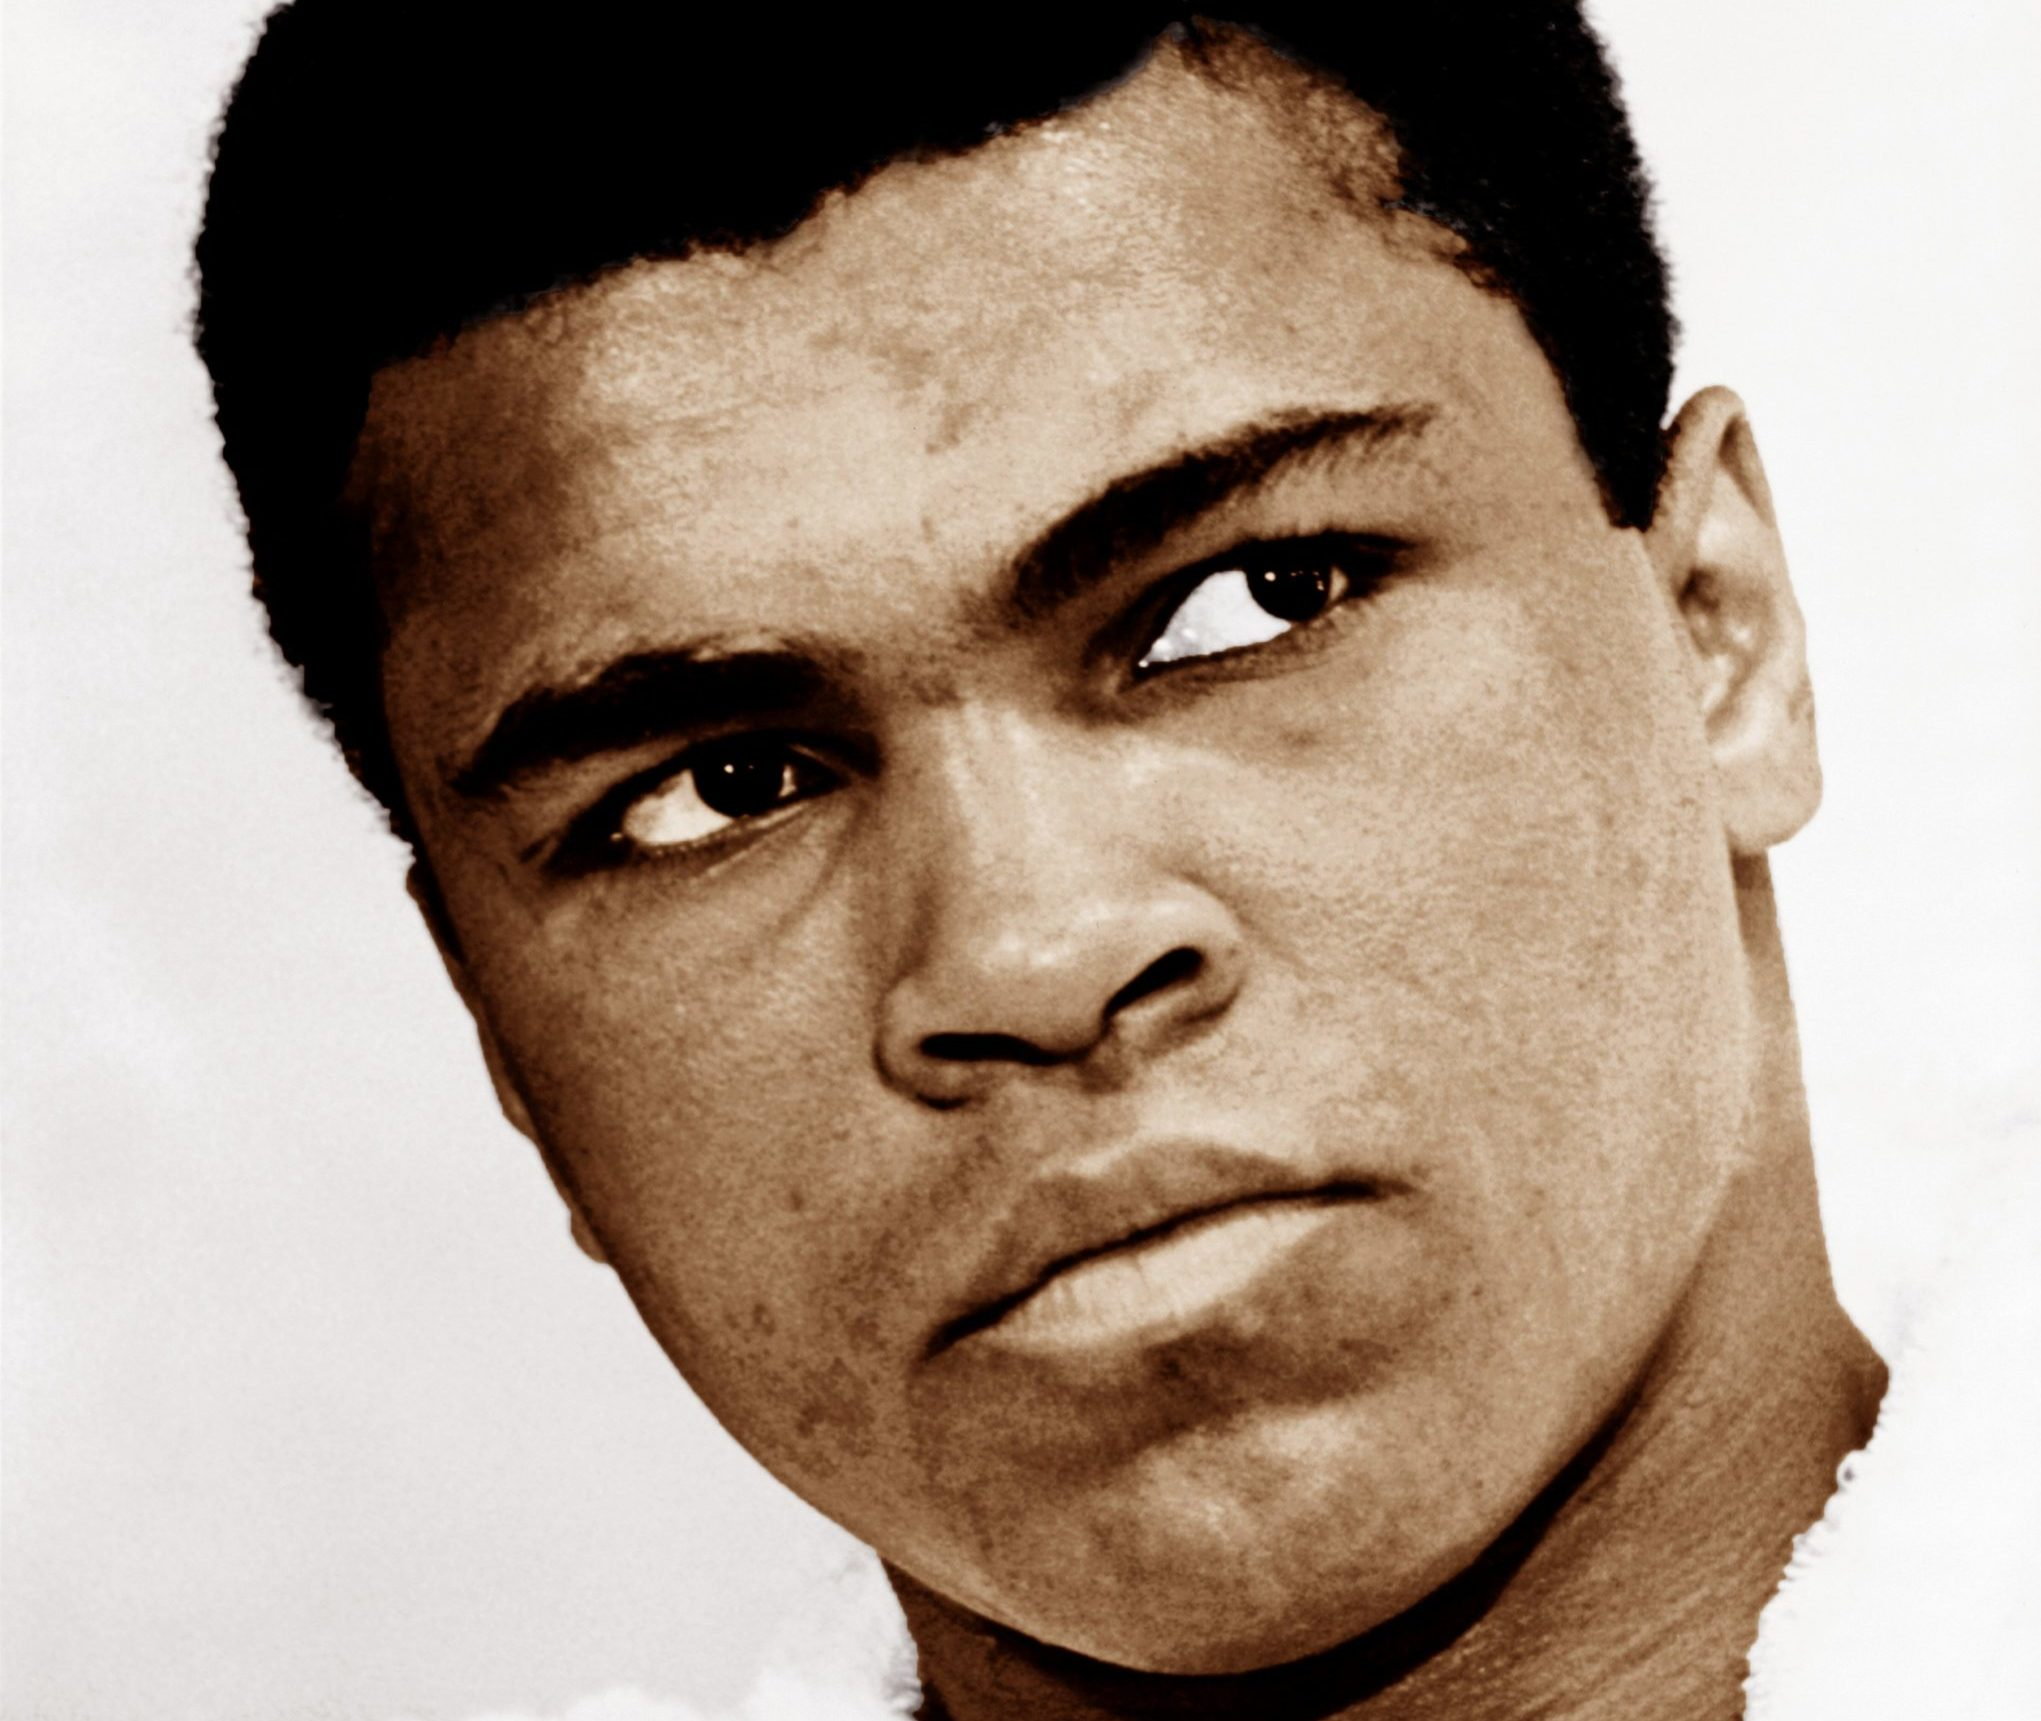 Cassius Clay  in 1963 during  his conversion to the Nation of Islam and transition to Muhammad Ali